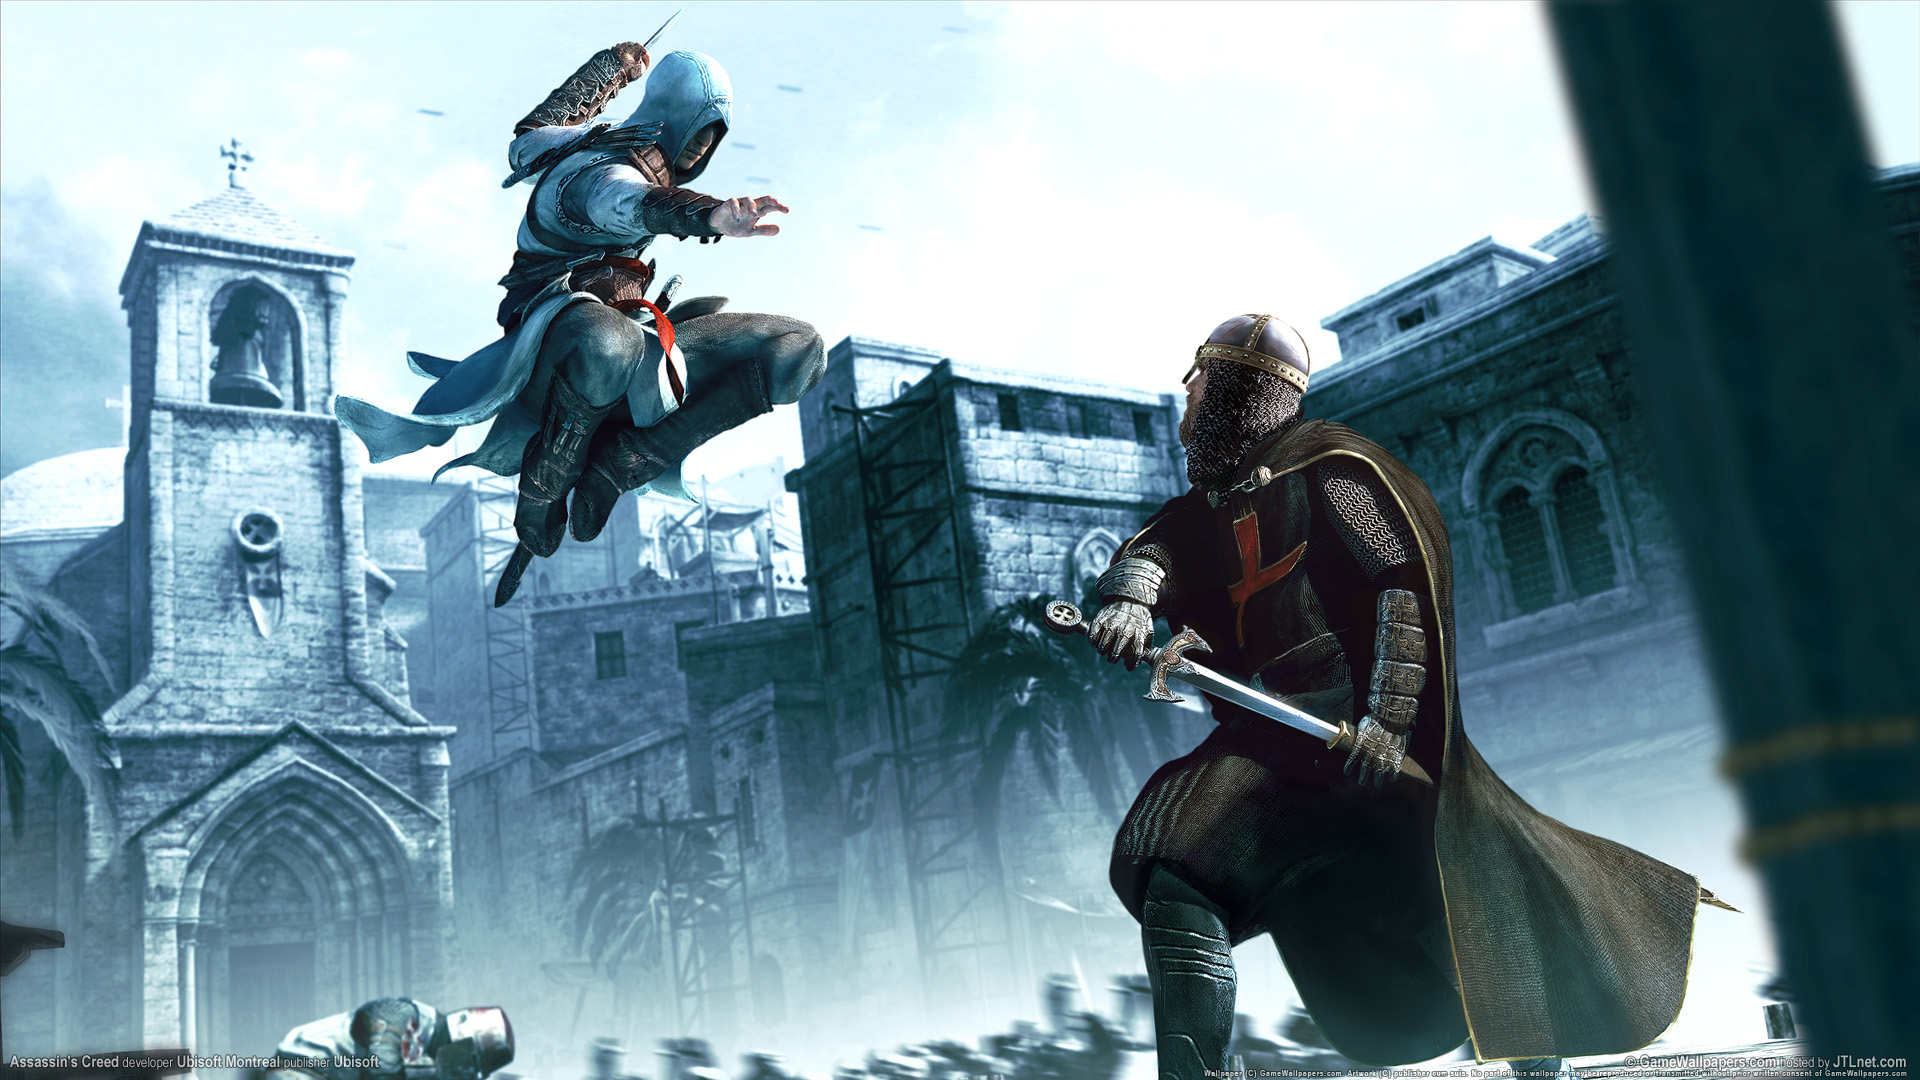 Download Assassins Creed Wallpaper Games HD pictures in high 1920x1080